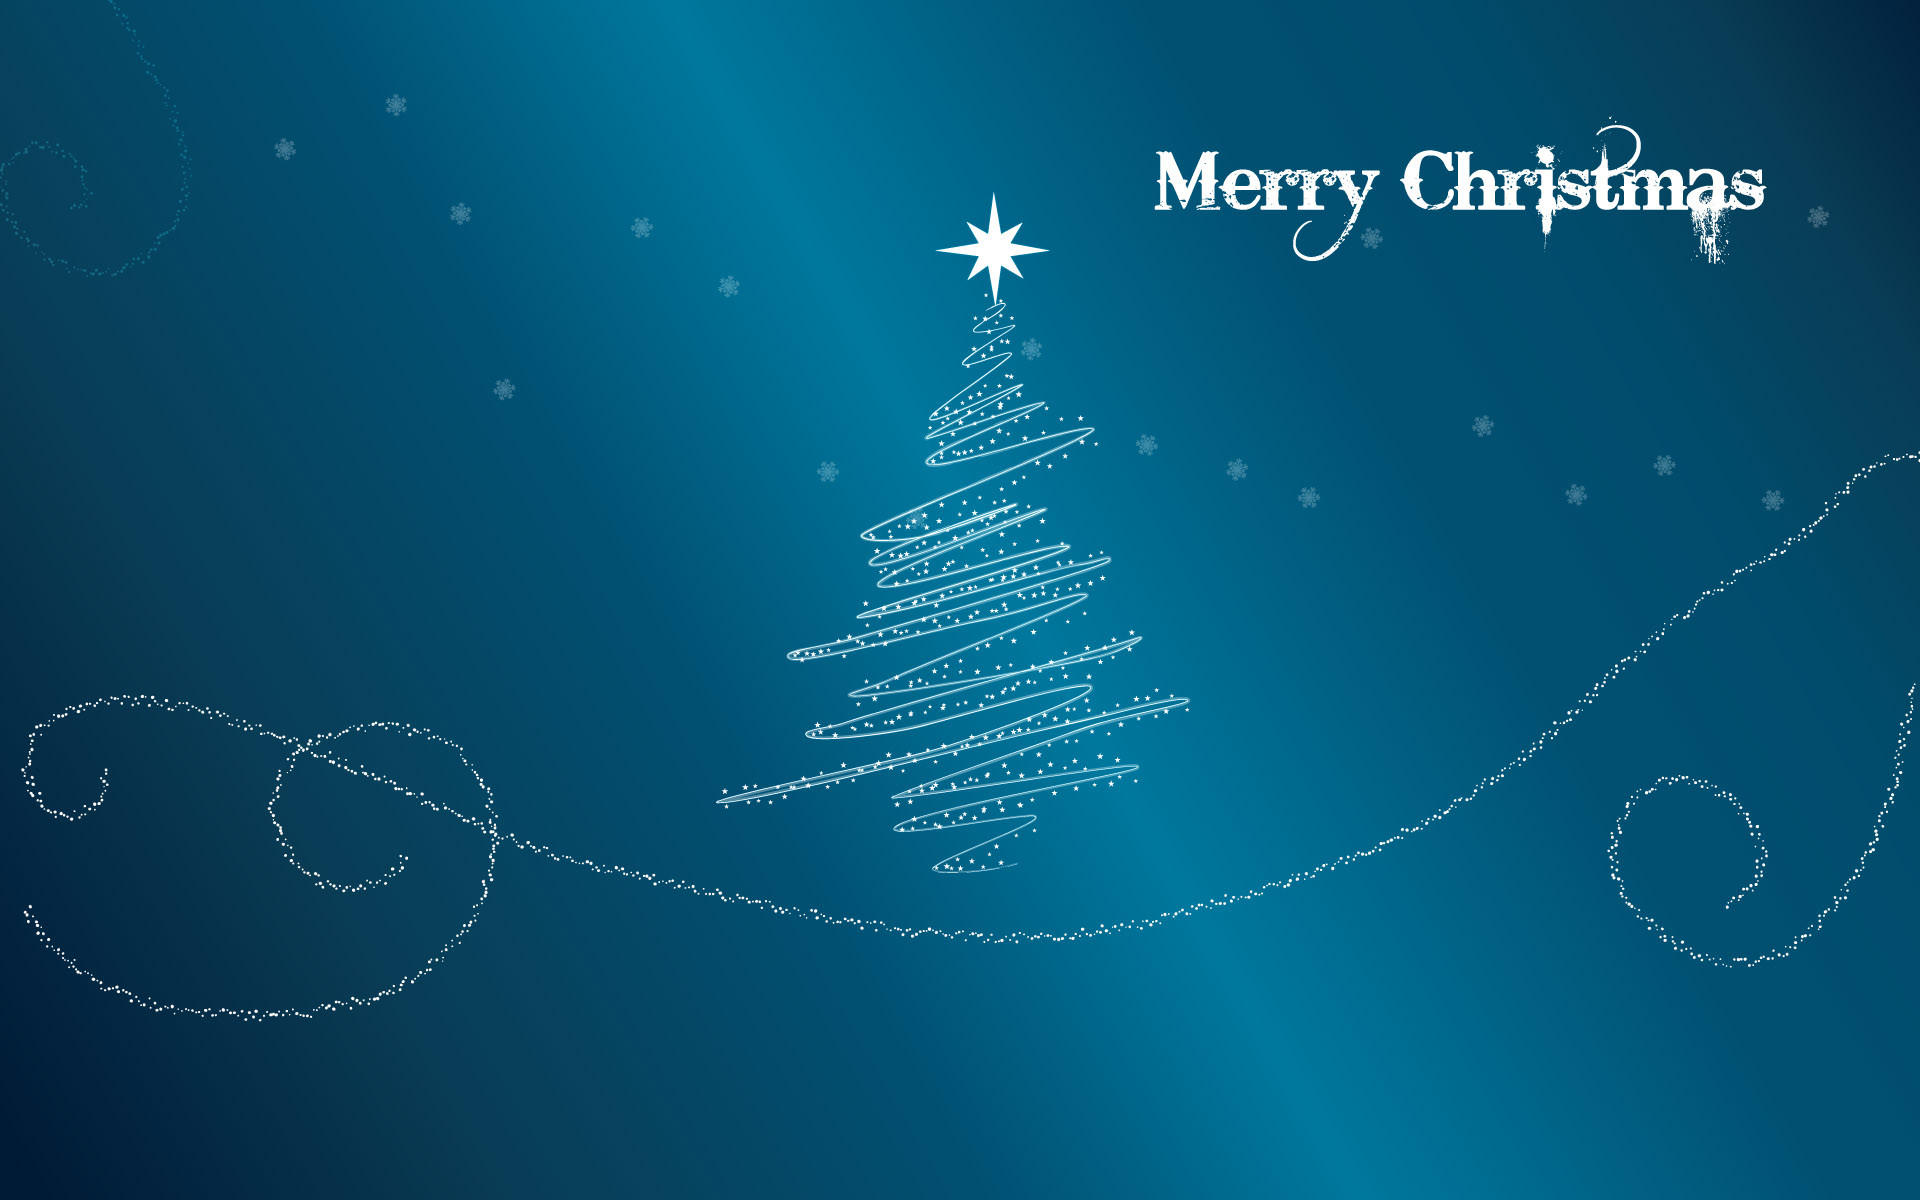 Merry Christmas Glitter Wallpapers | HD Wallpapers